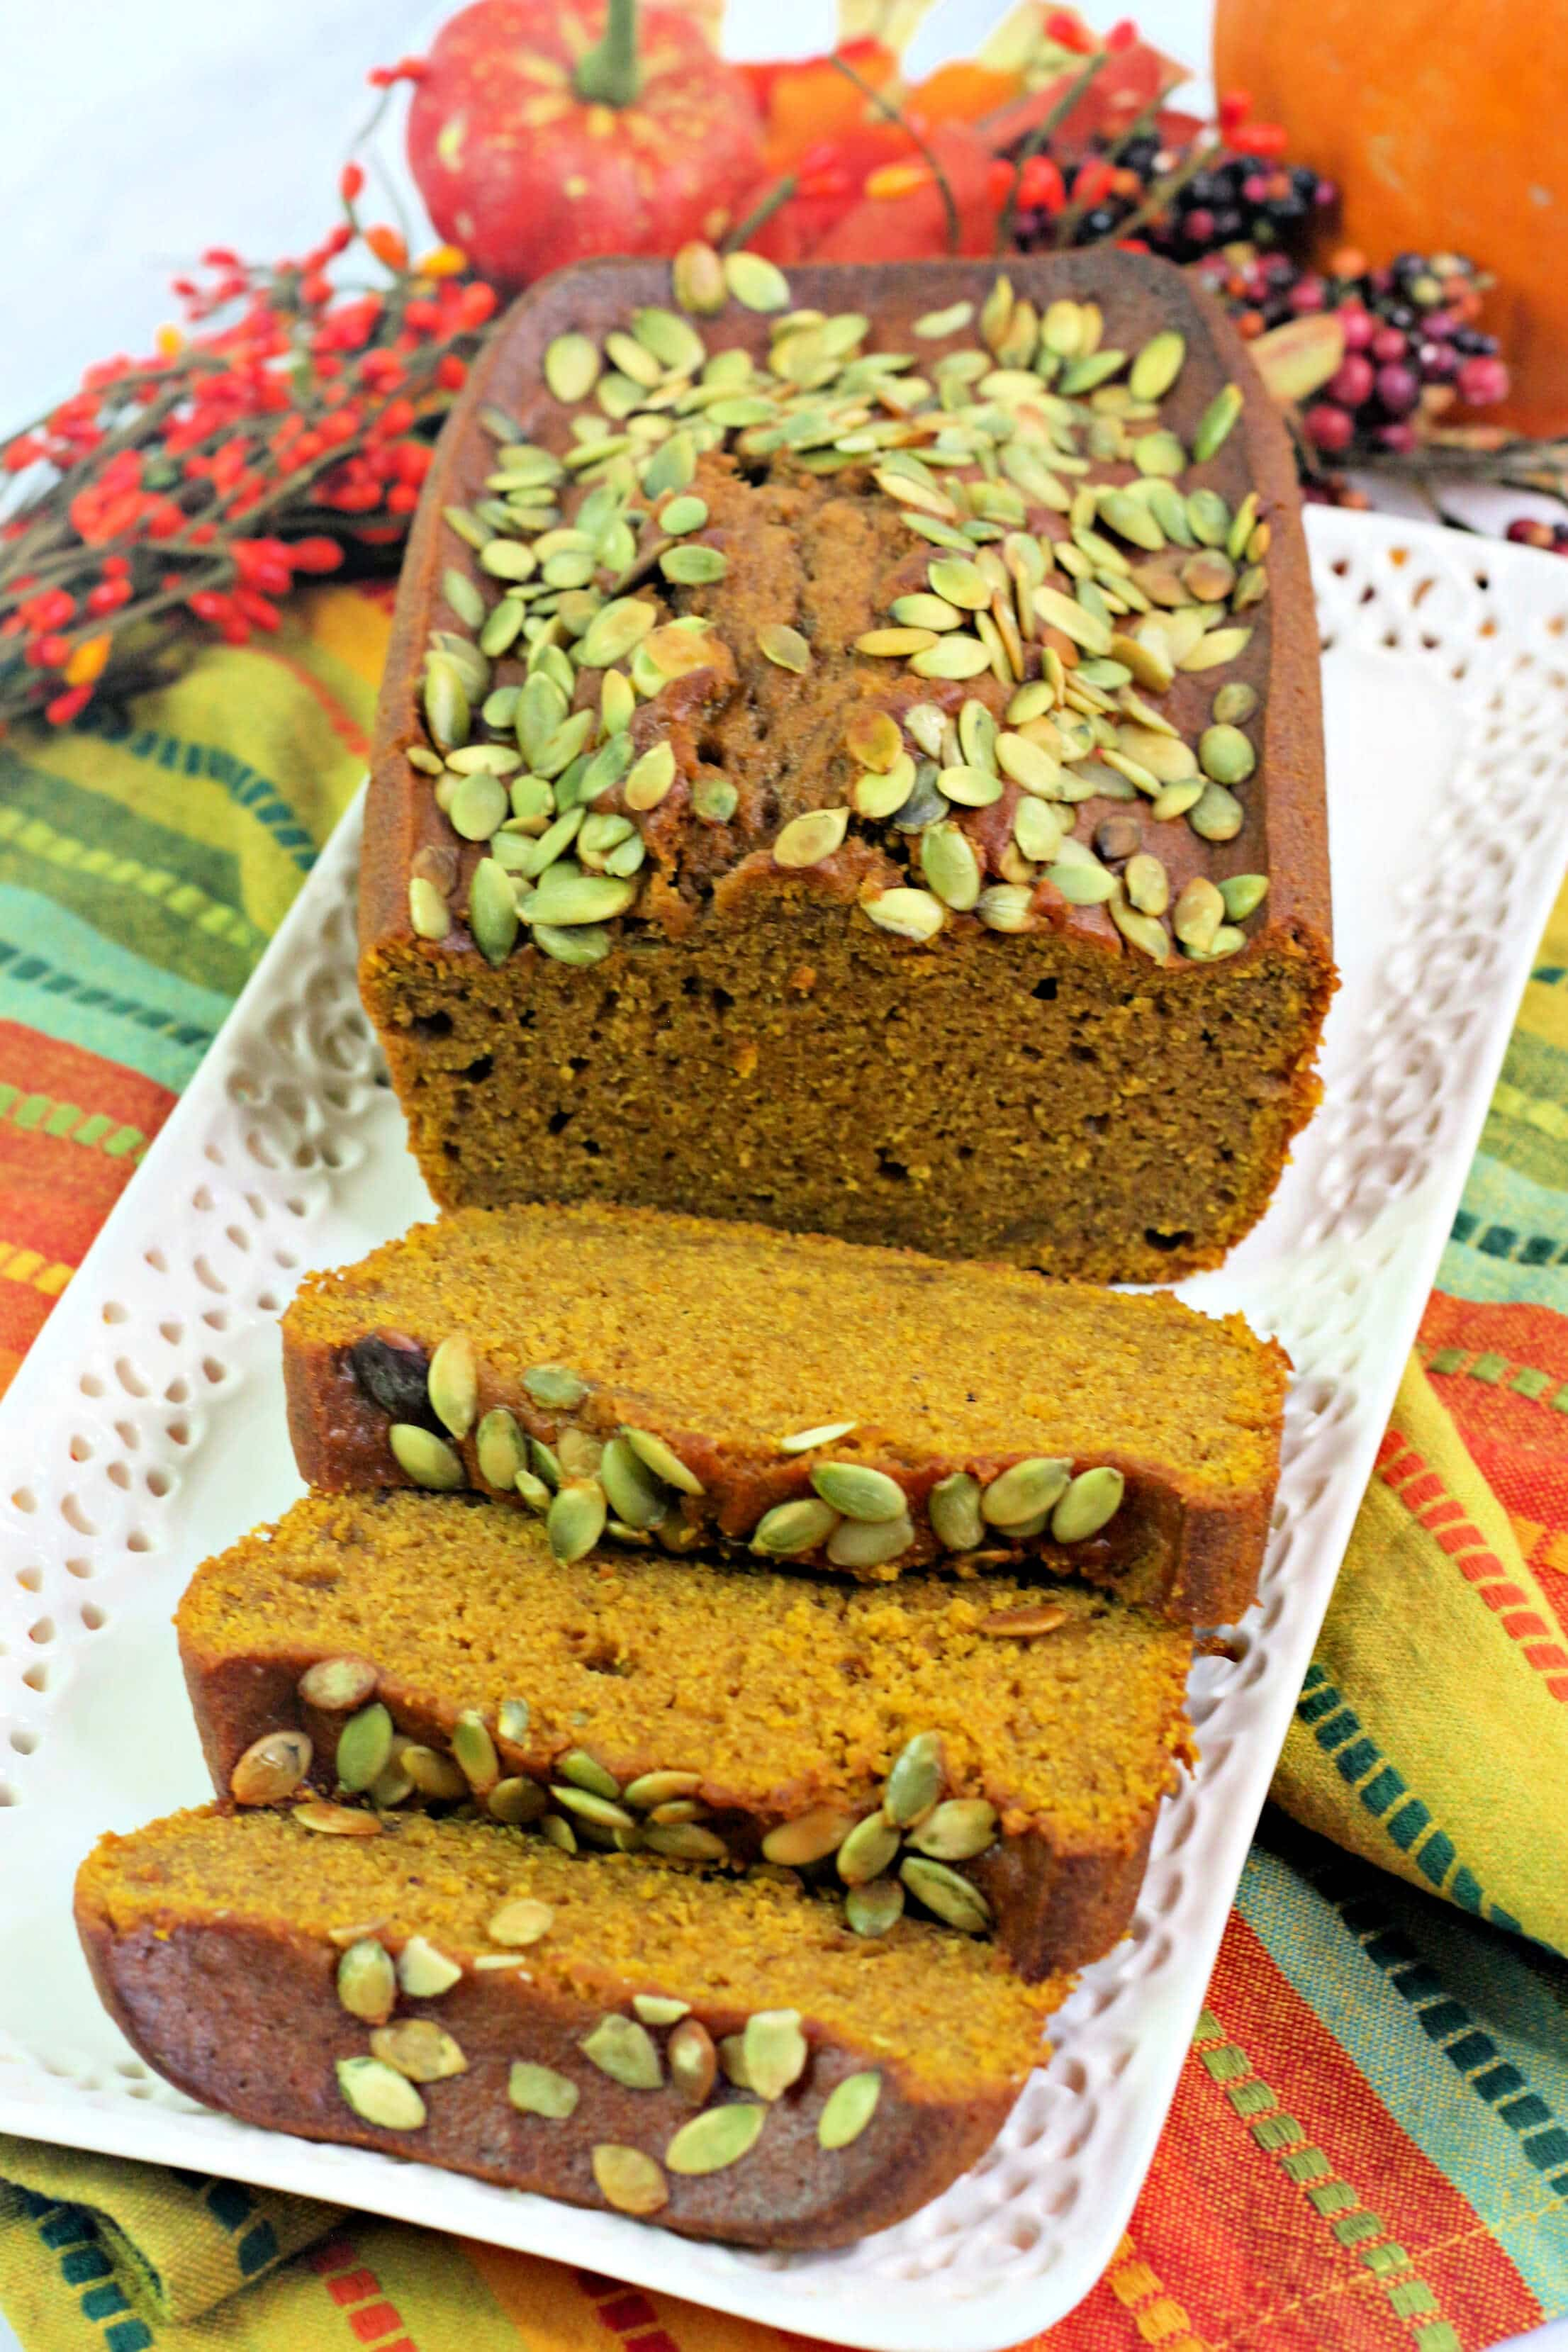 Starbucks pumpkin bread recipe